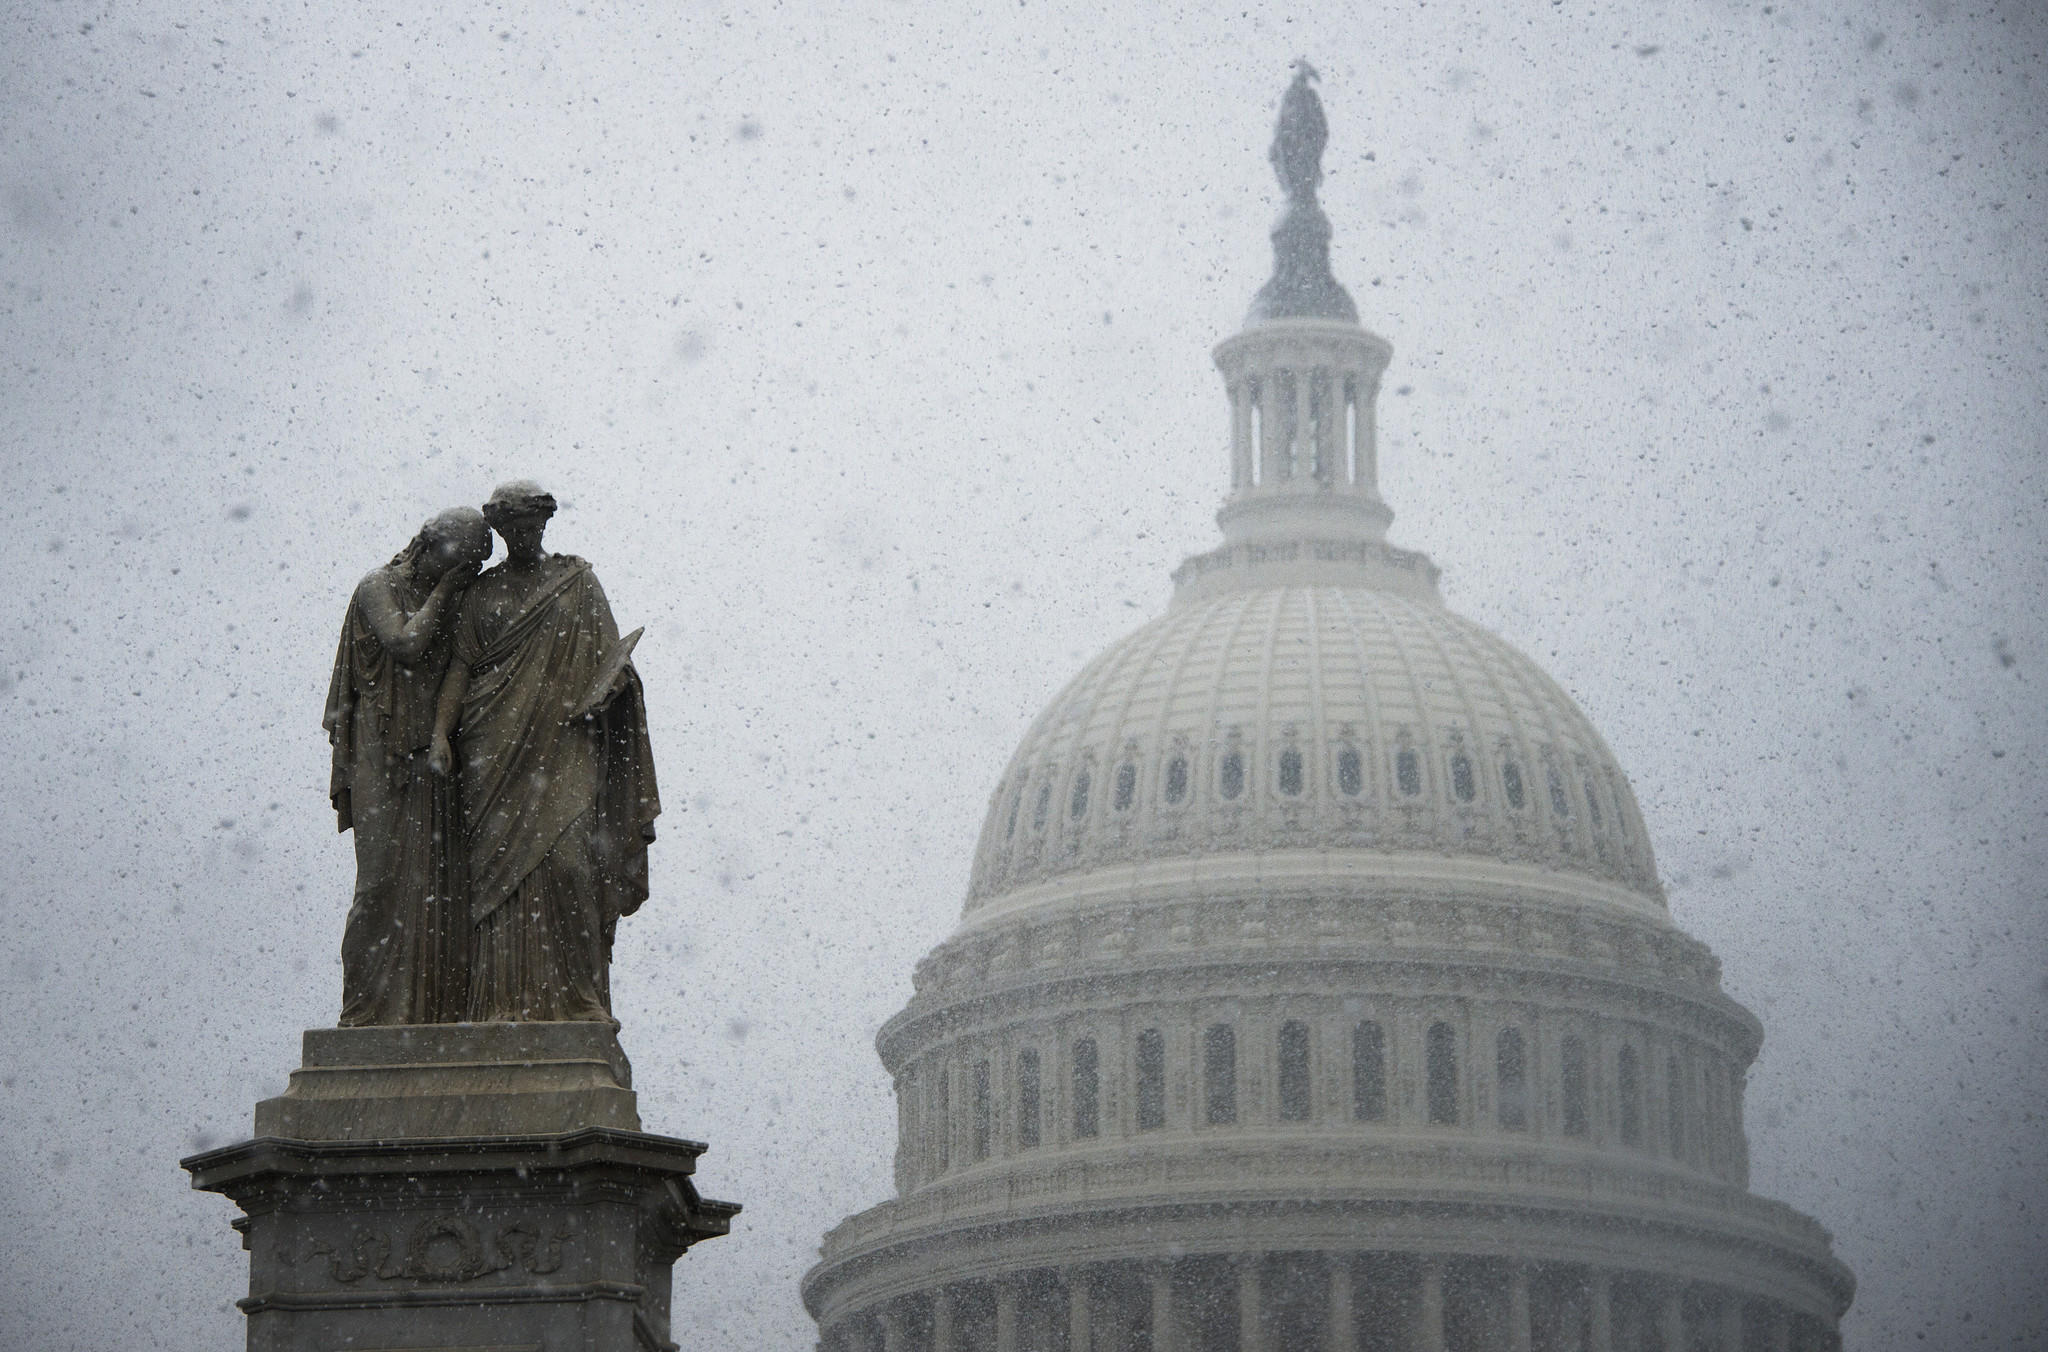 Snow gathers on a statue outside the US Capitol Building in Washington.